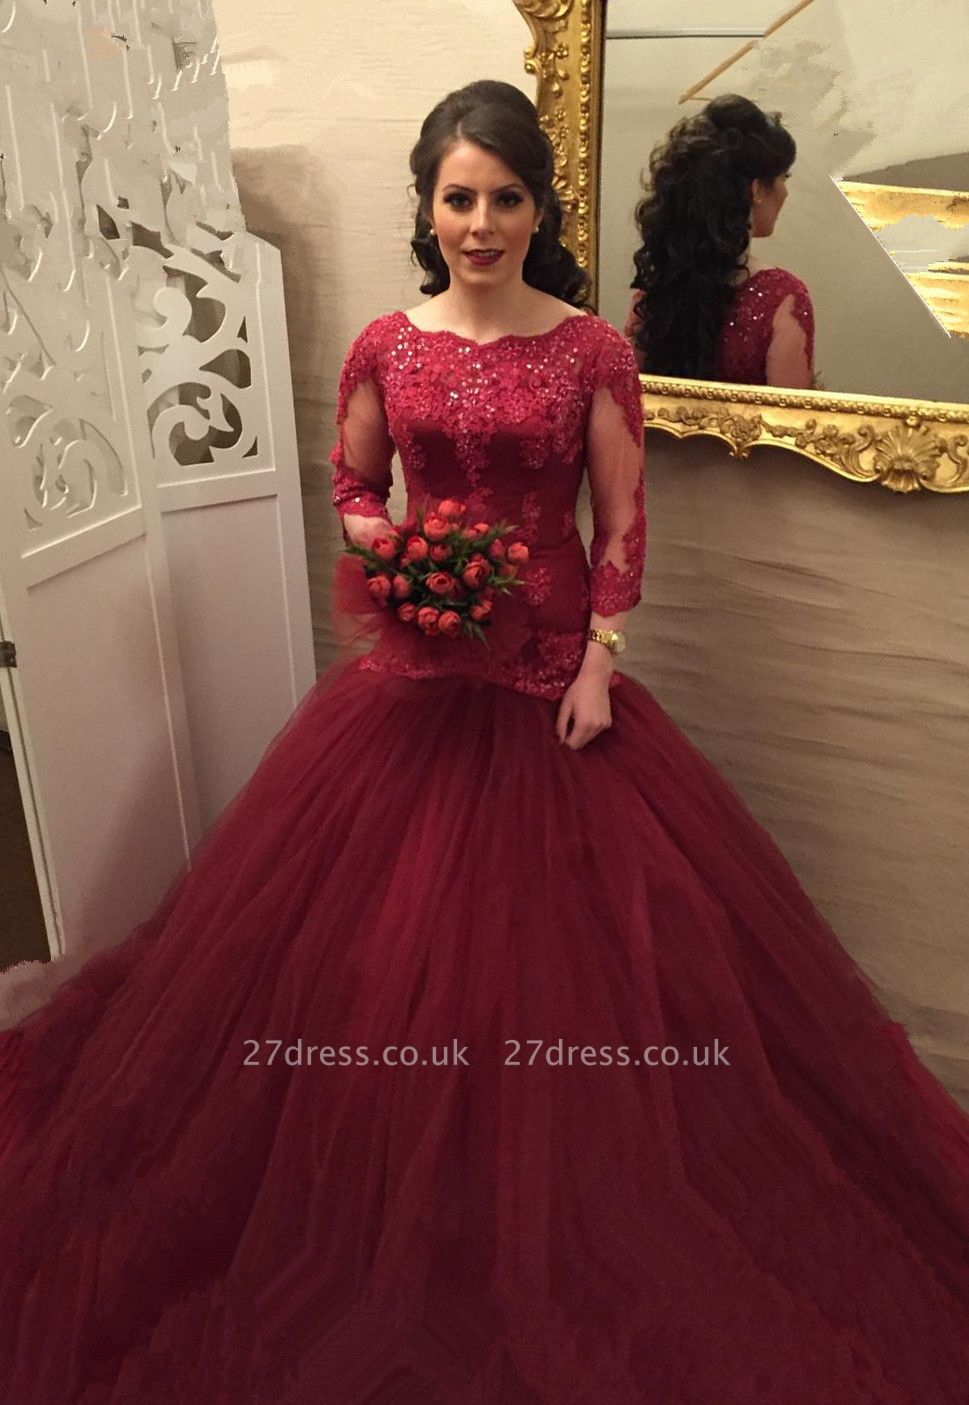 Modern Lace Red Mermaid Evening Gown | Long Sleeve Evening Dress UK